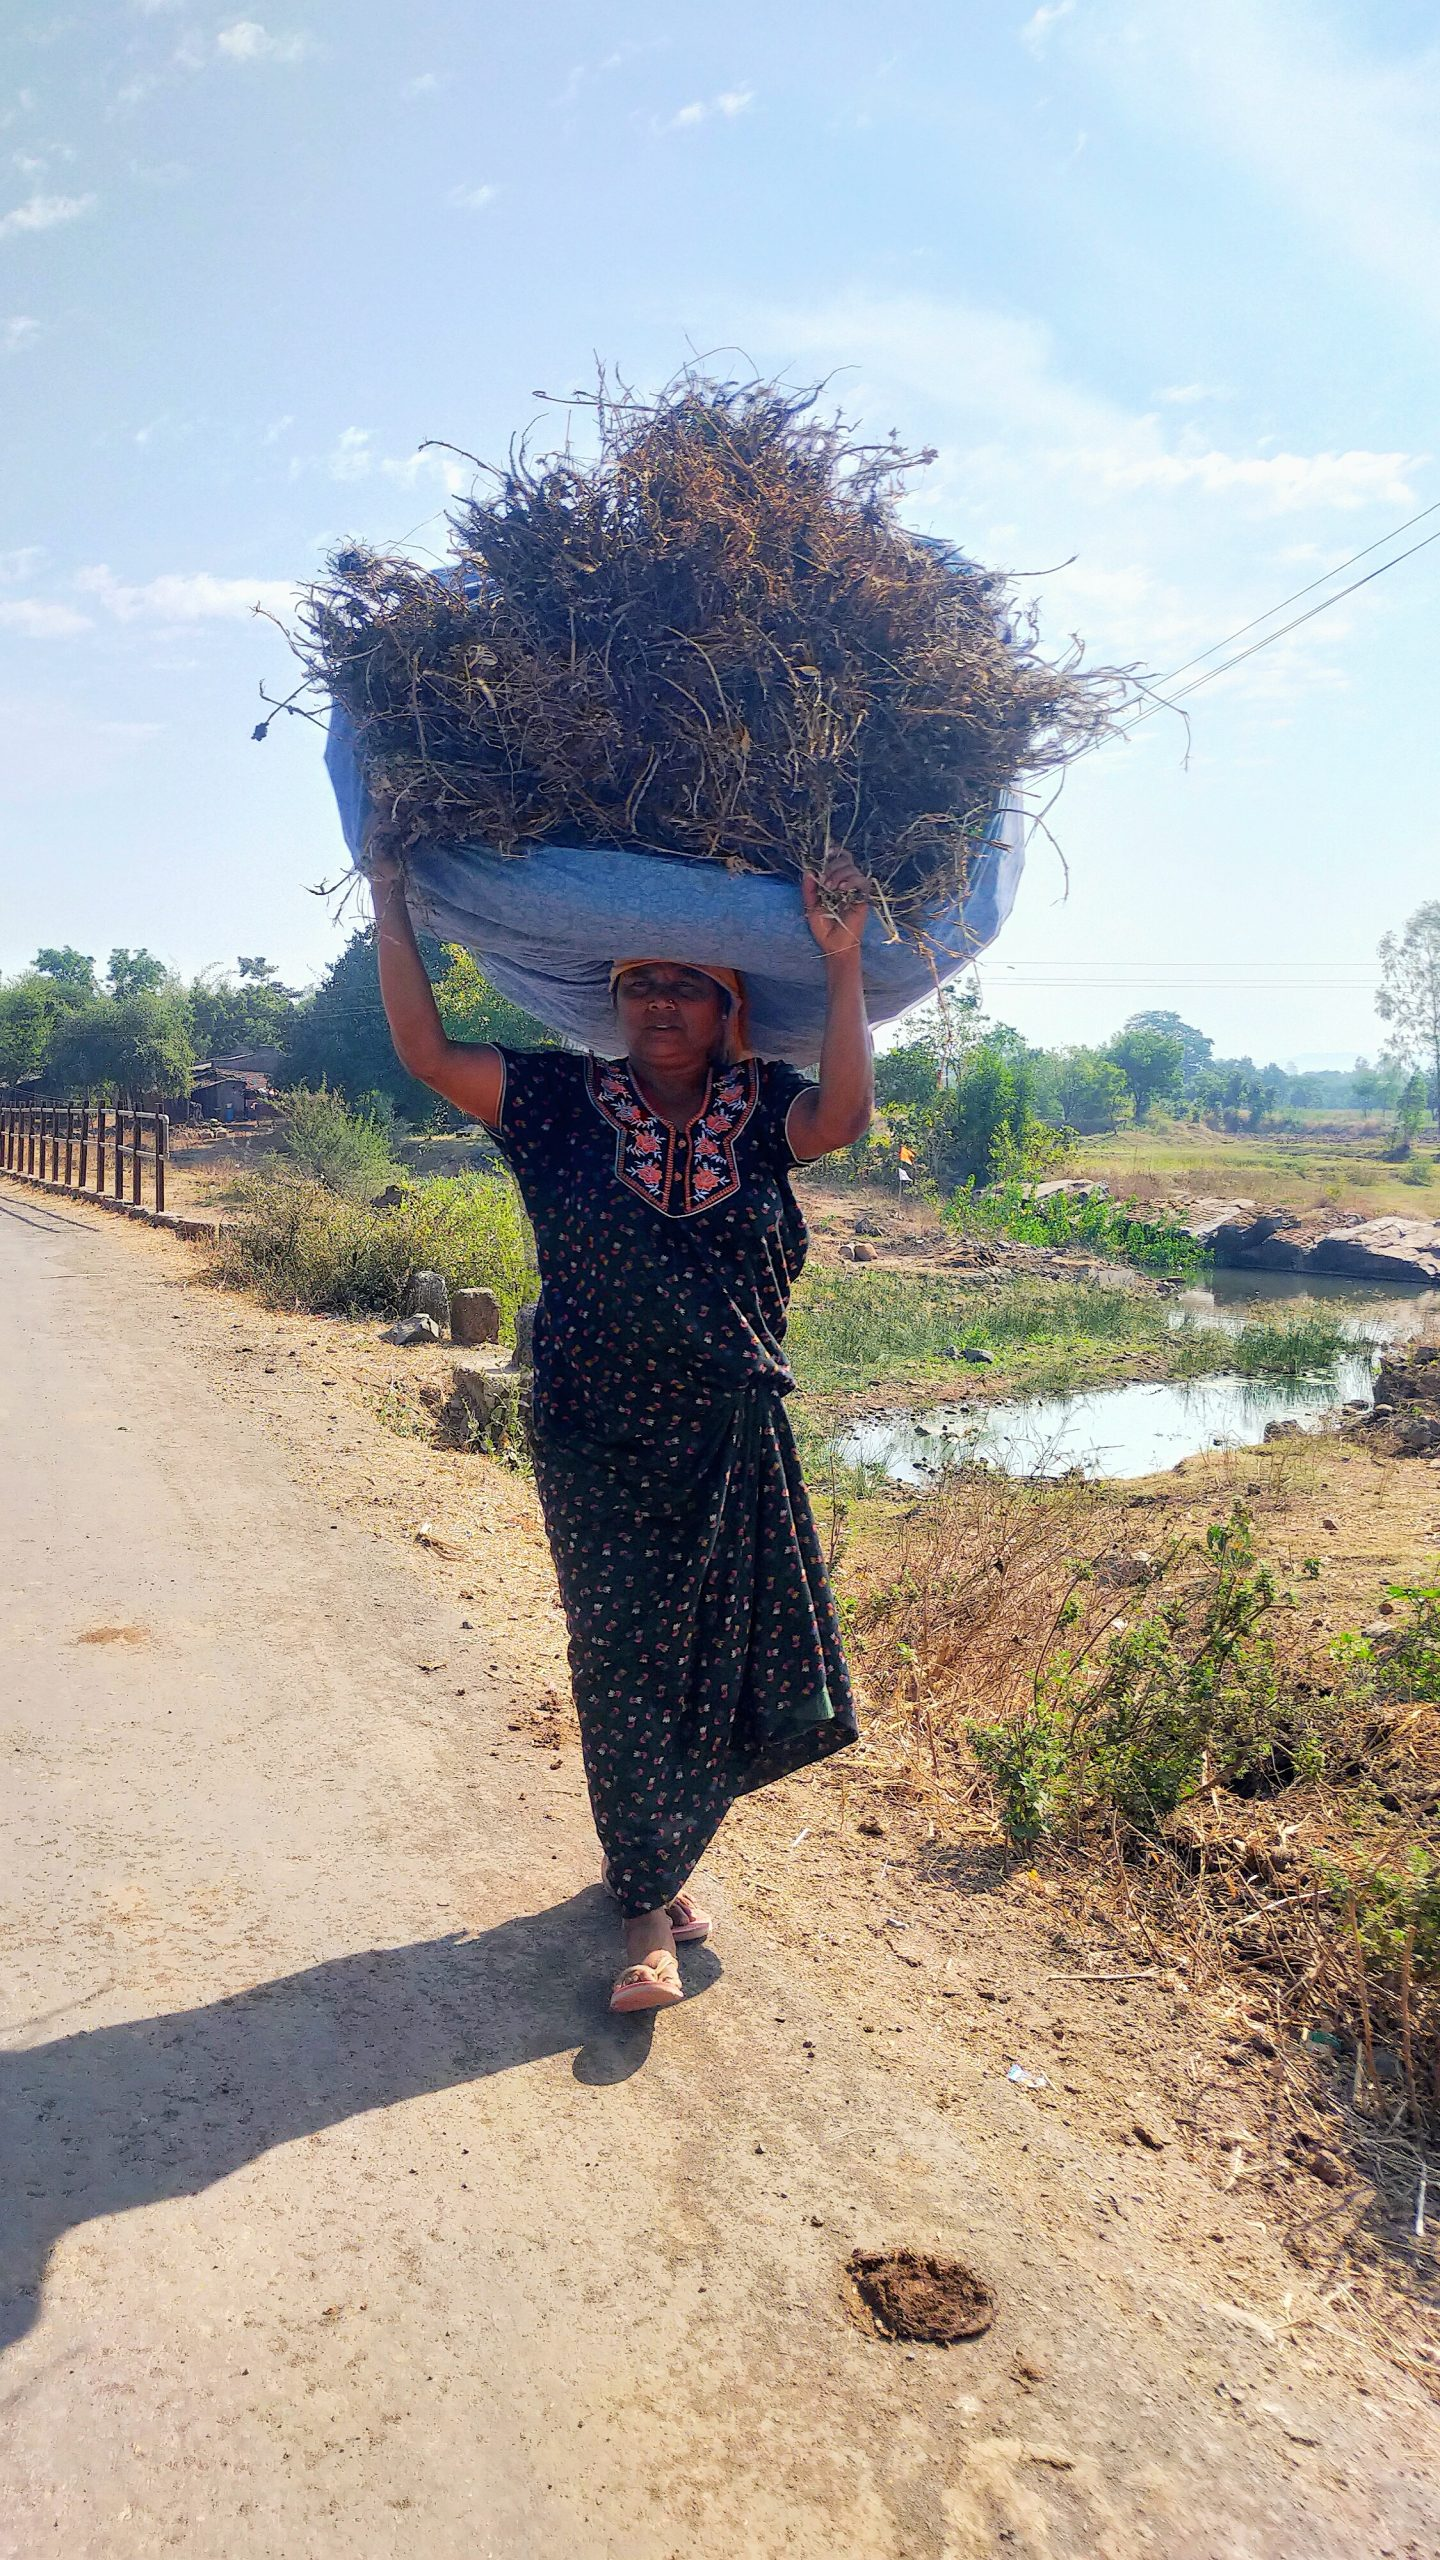 A village woman carrying animal fodder